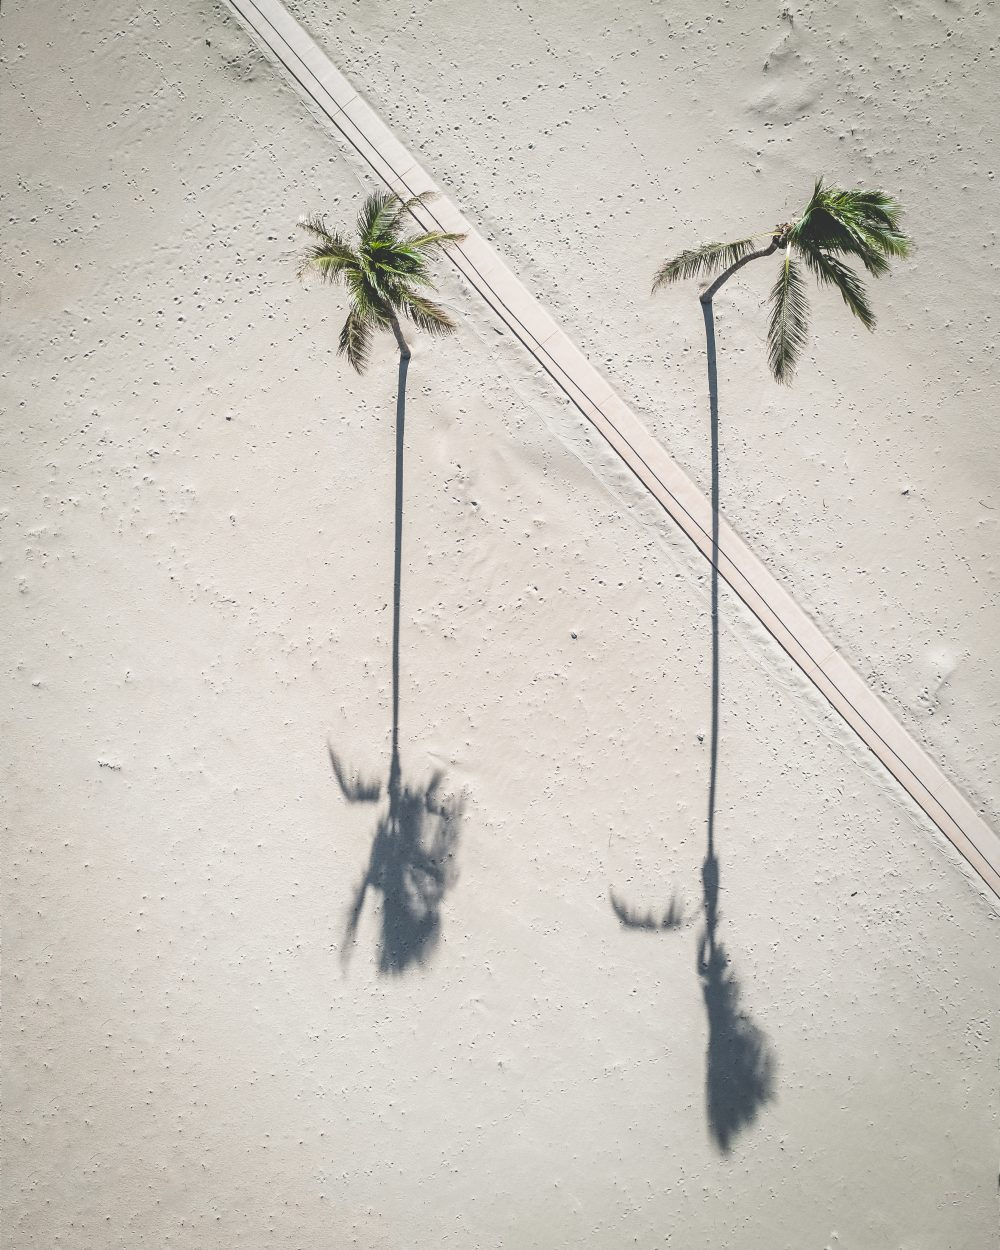 Drone image of palm trees